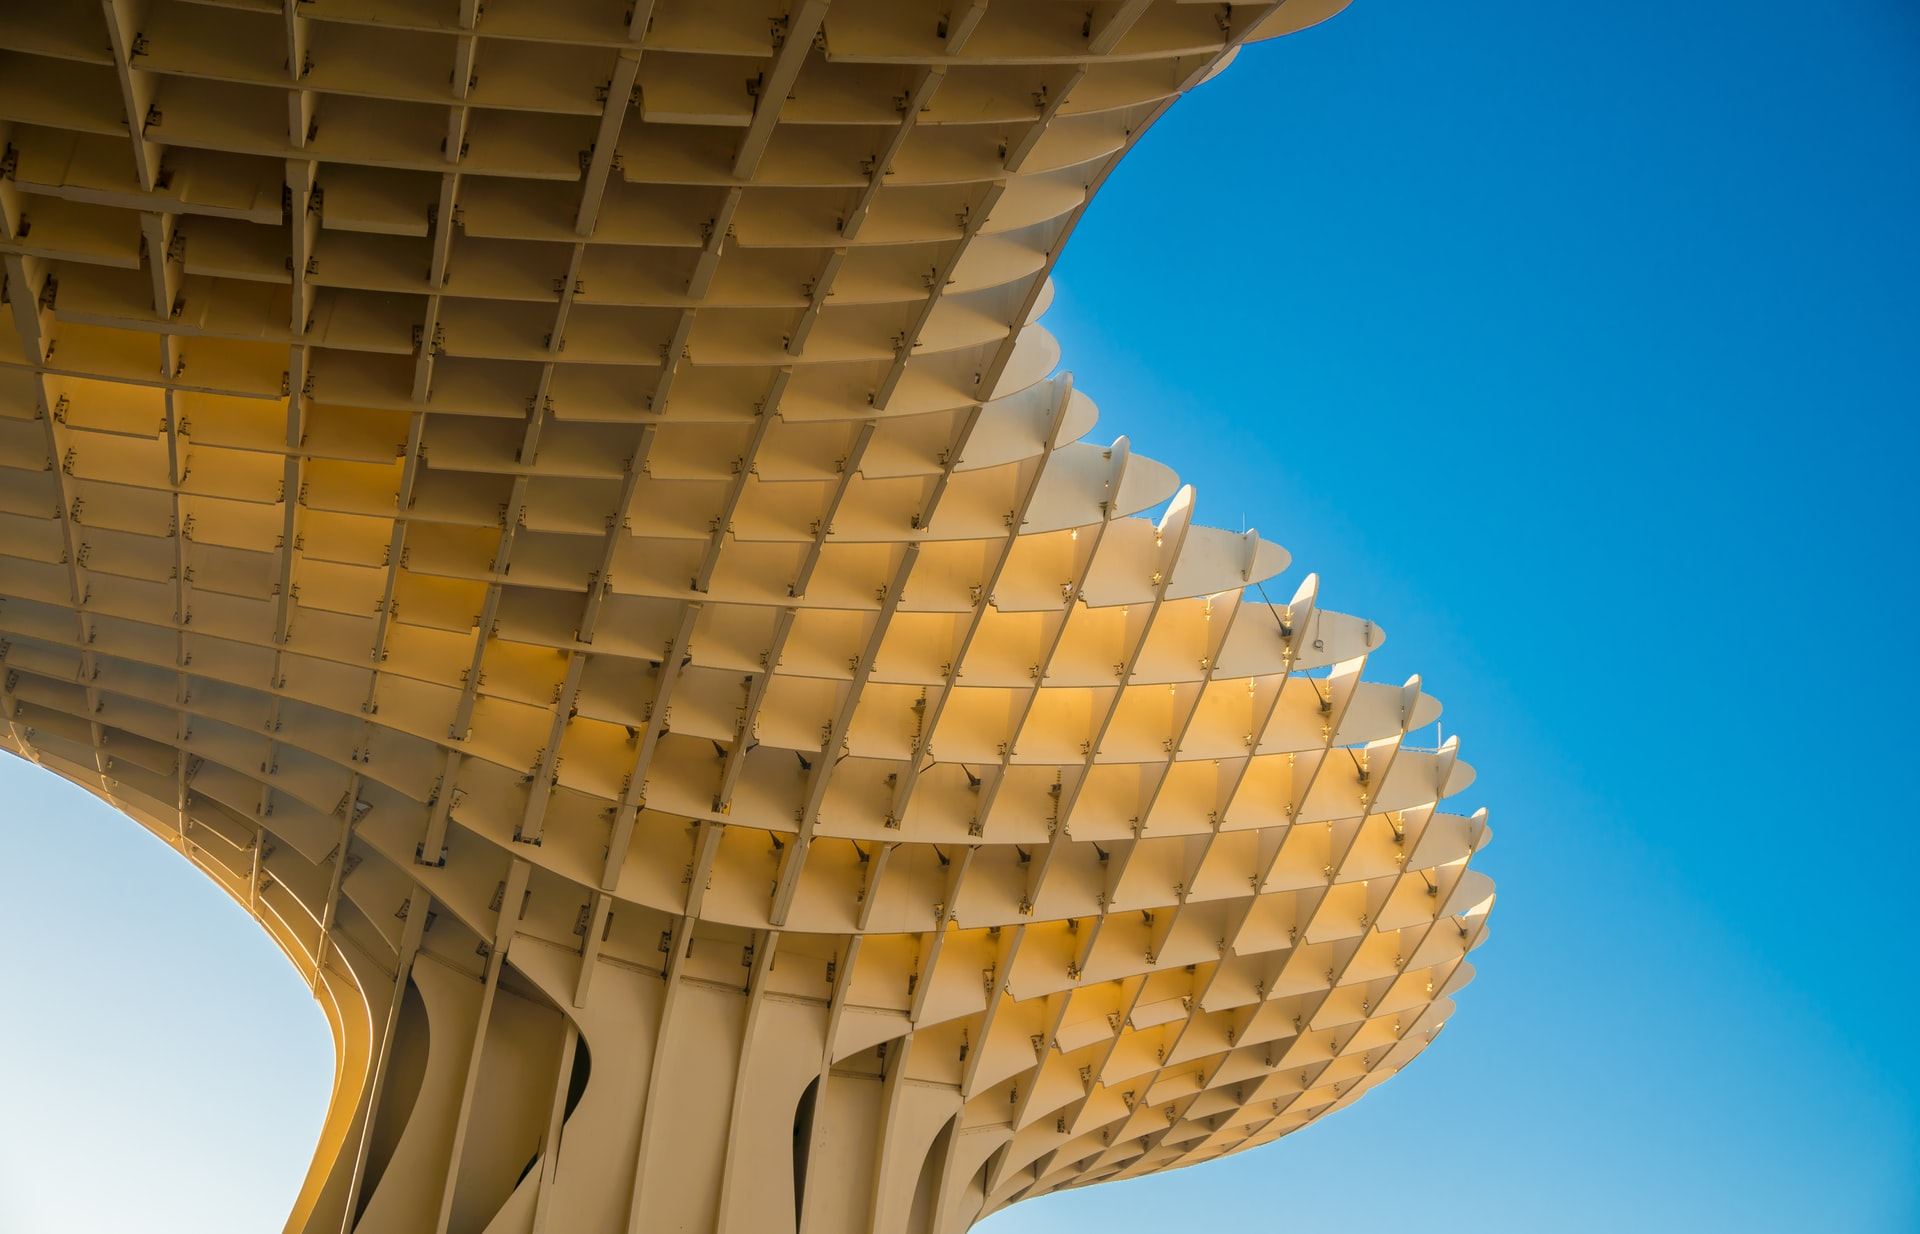 a close up of a large abstract architectural pattern that looks like honeycomb with blue sky in the background